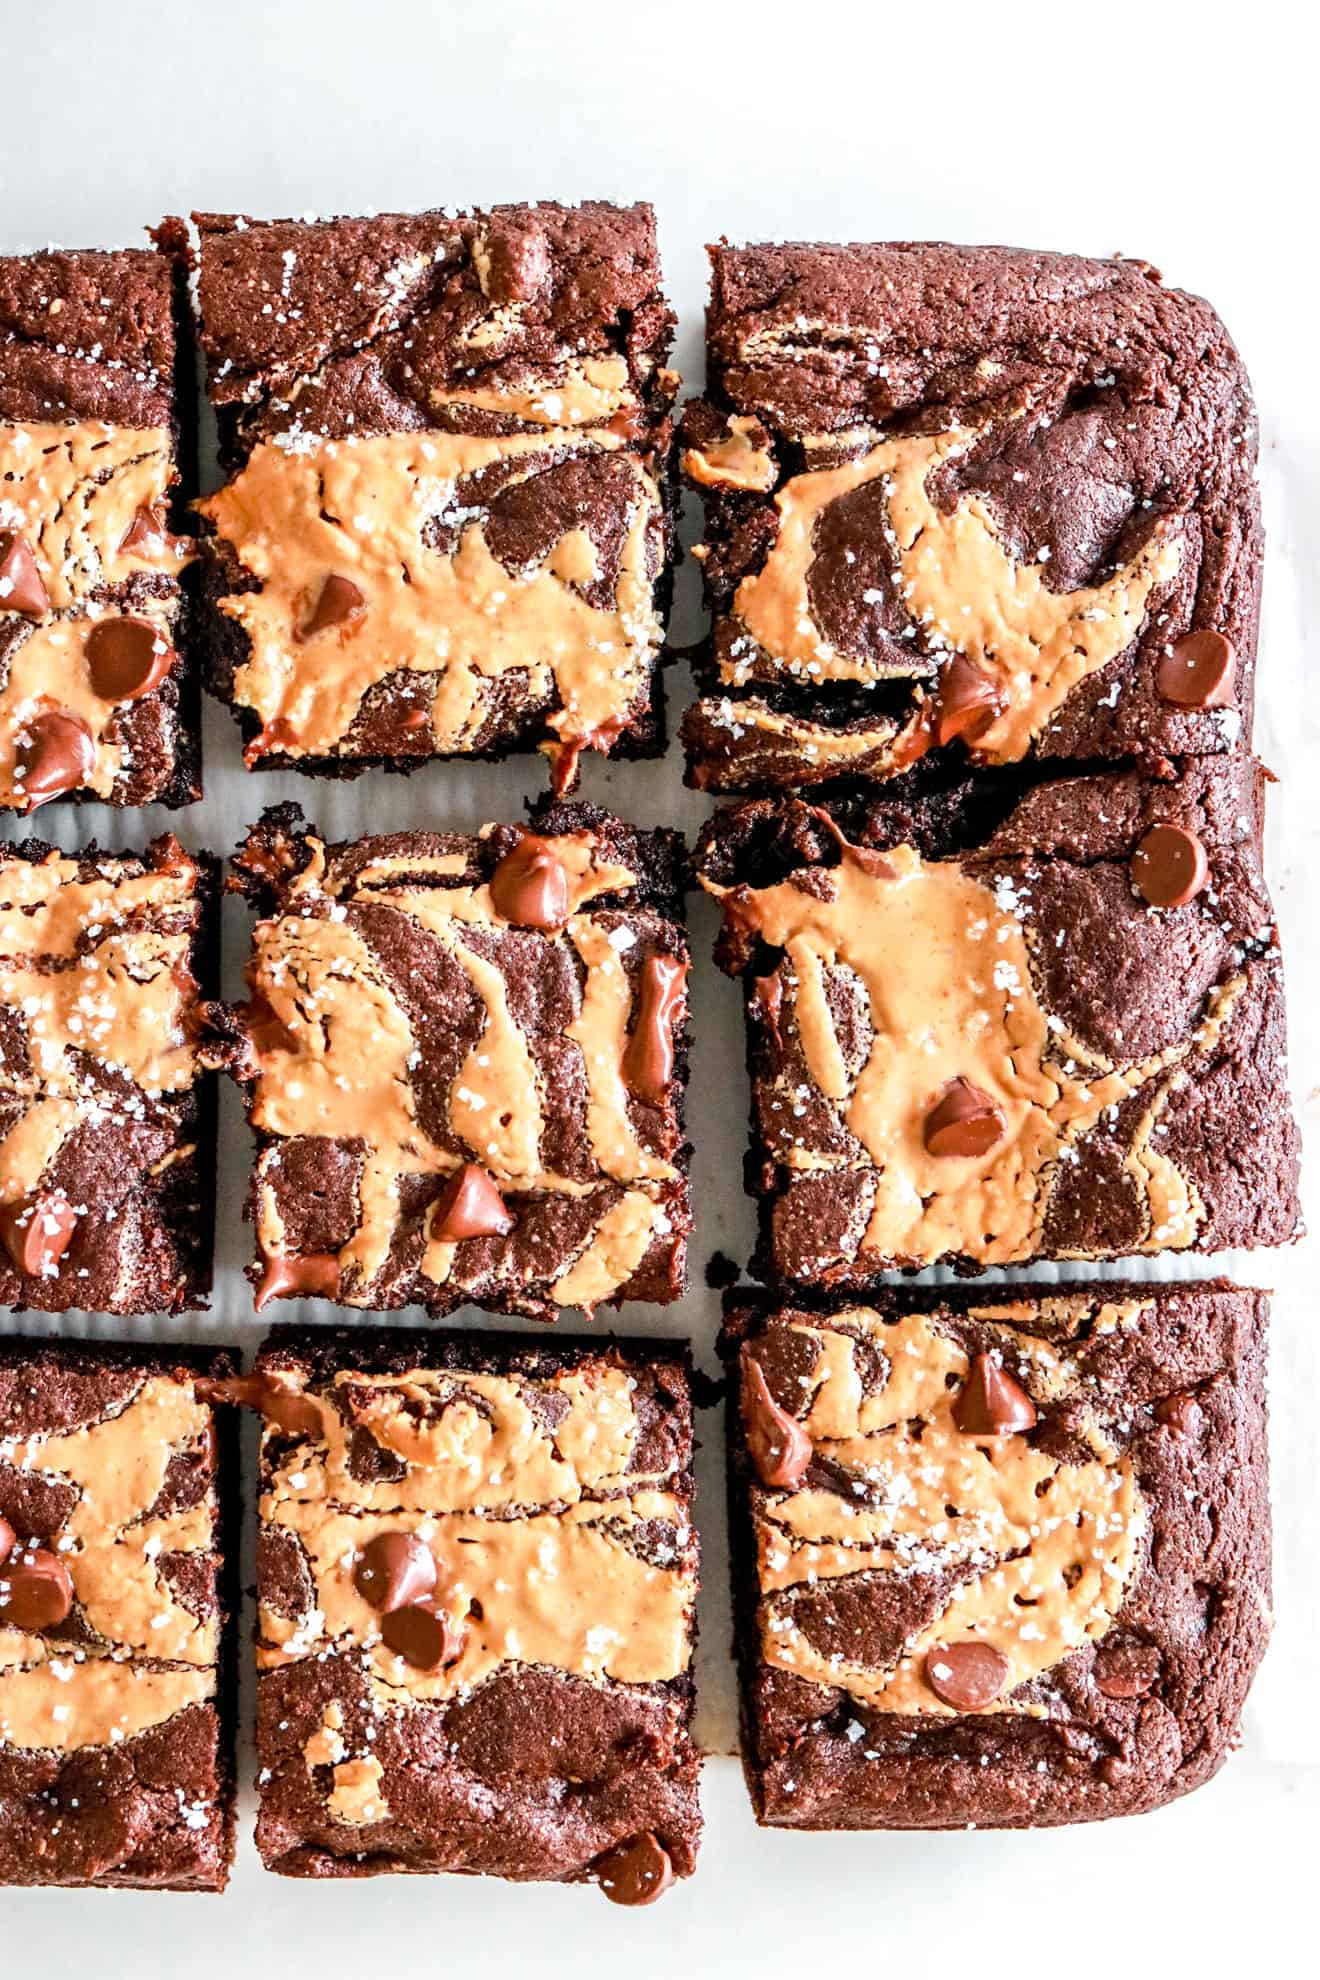 chocolate brownies with a peanut butter swirl, melty chocolate chips and sea salt on a white background